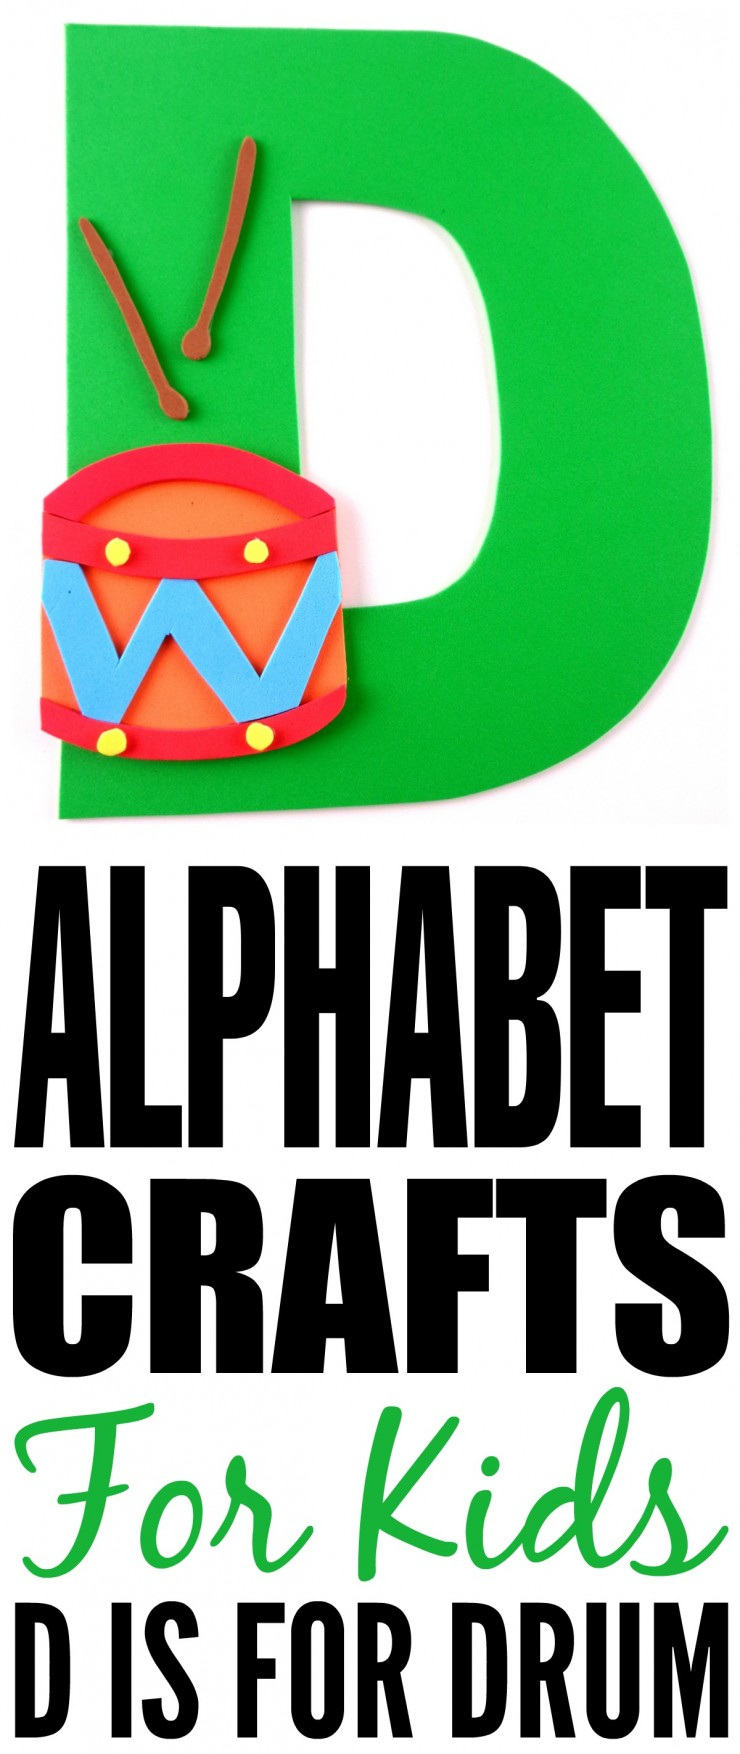 This week is my series of ABCs kids crafts featuring the Alphabet, we are doing a D is for Drum craft. These Alphabet Crafts For Kids are a fun way to introduce your child to the alphabet.